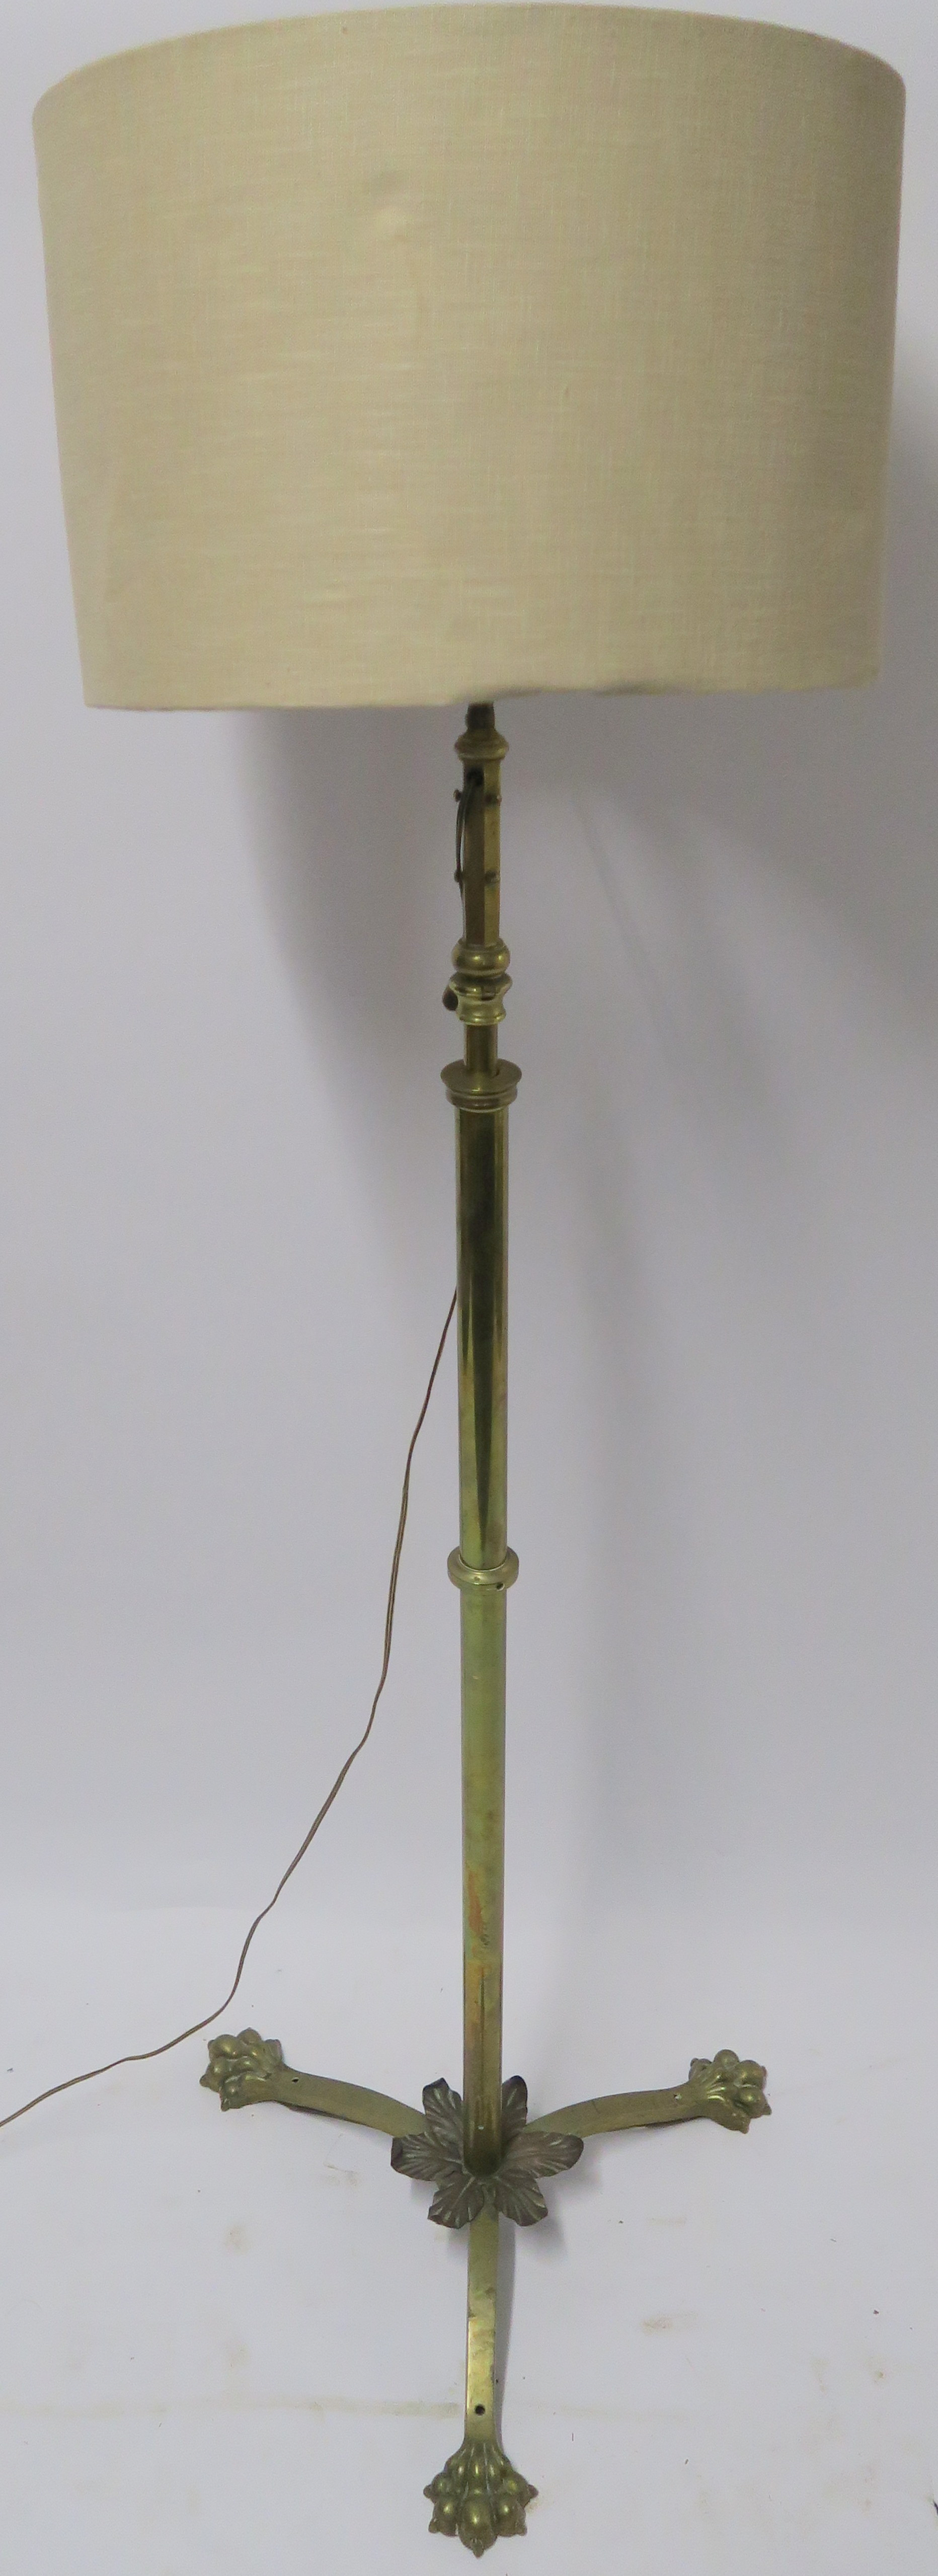 A BRASS STANDARD LAMP Condition Report: Available upon request